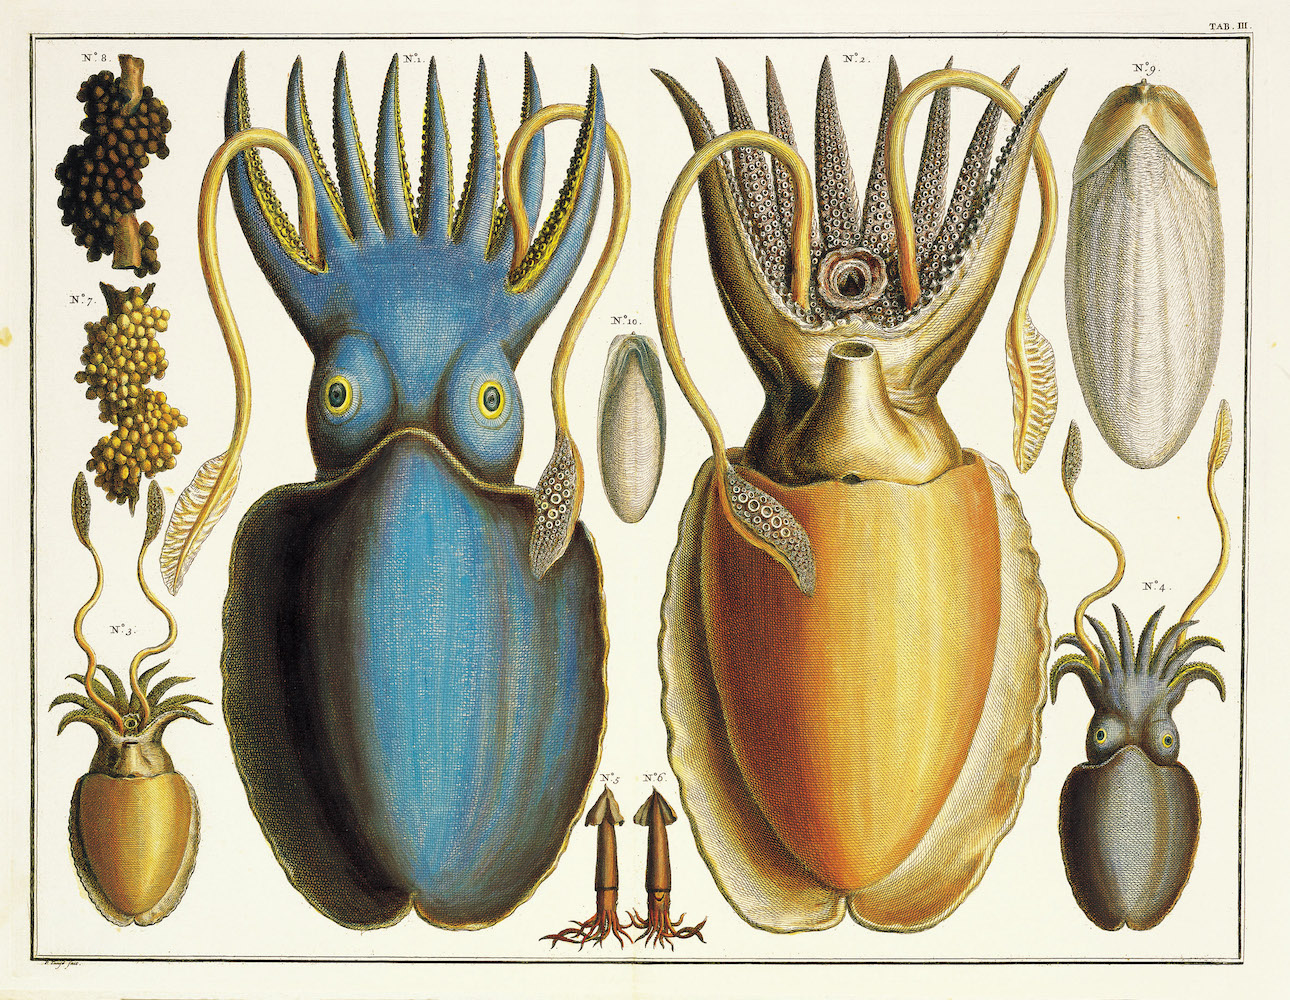 ILLUSTRATI | Albertus Seba's Cabinet of Natural Curiosities